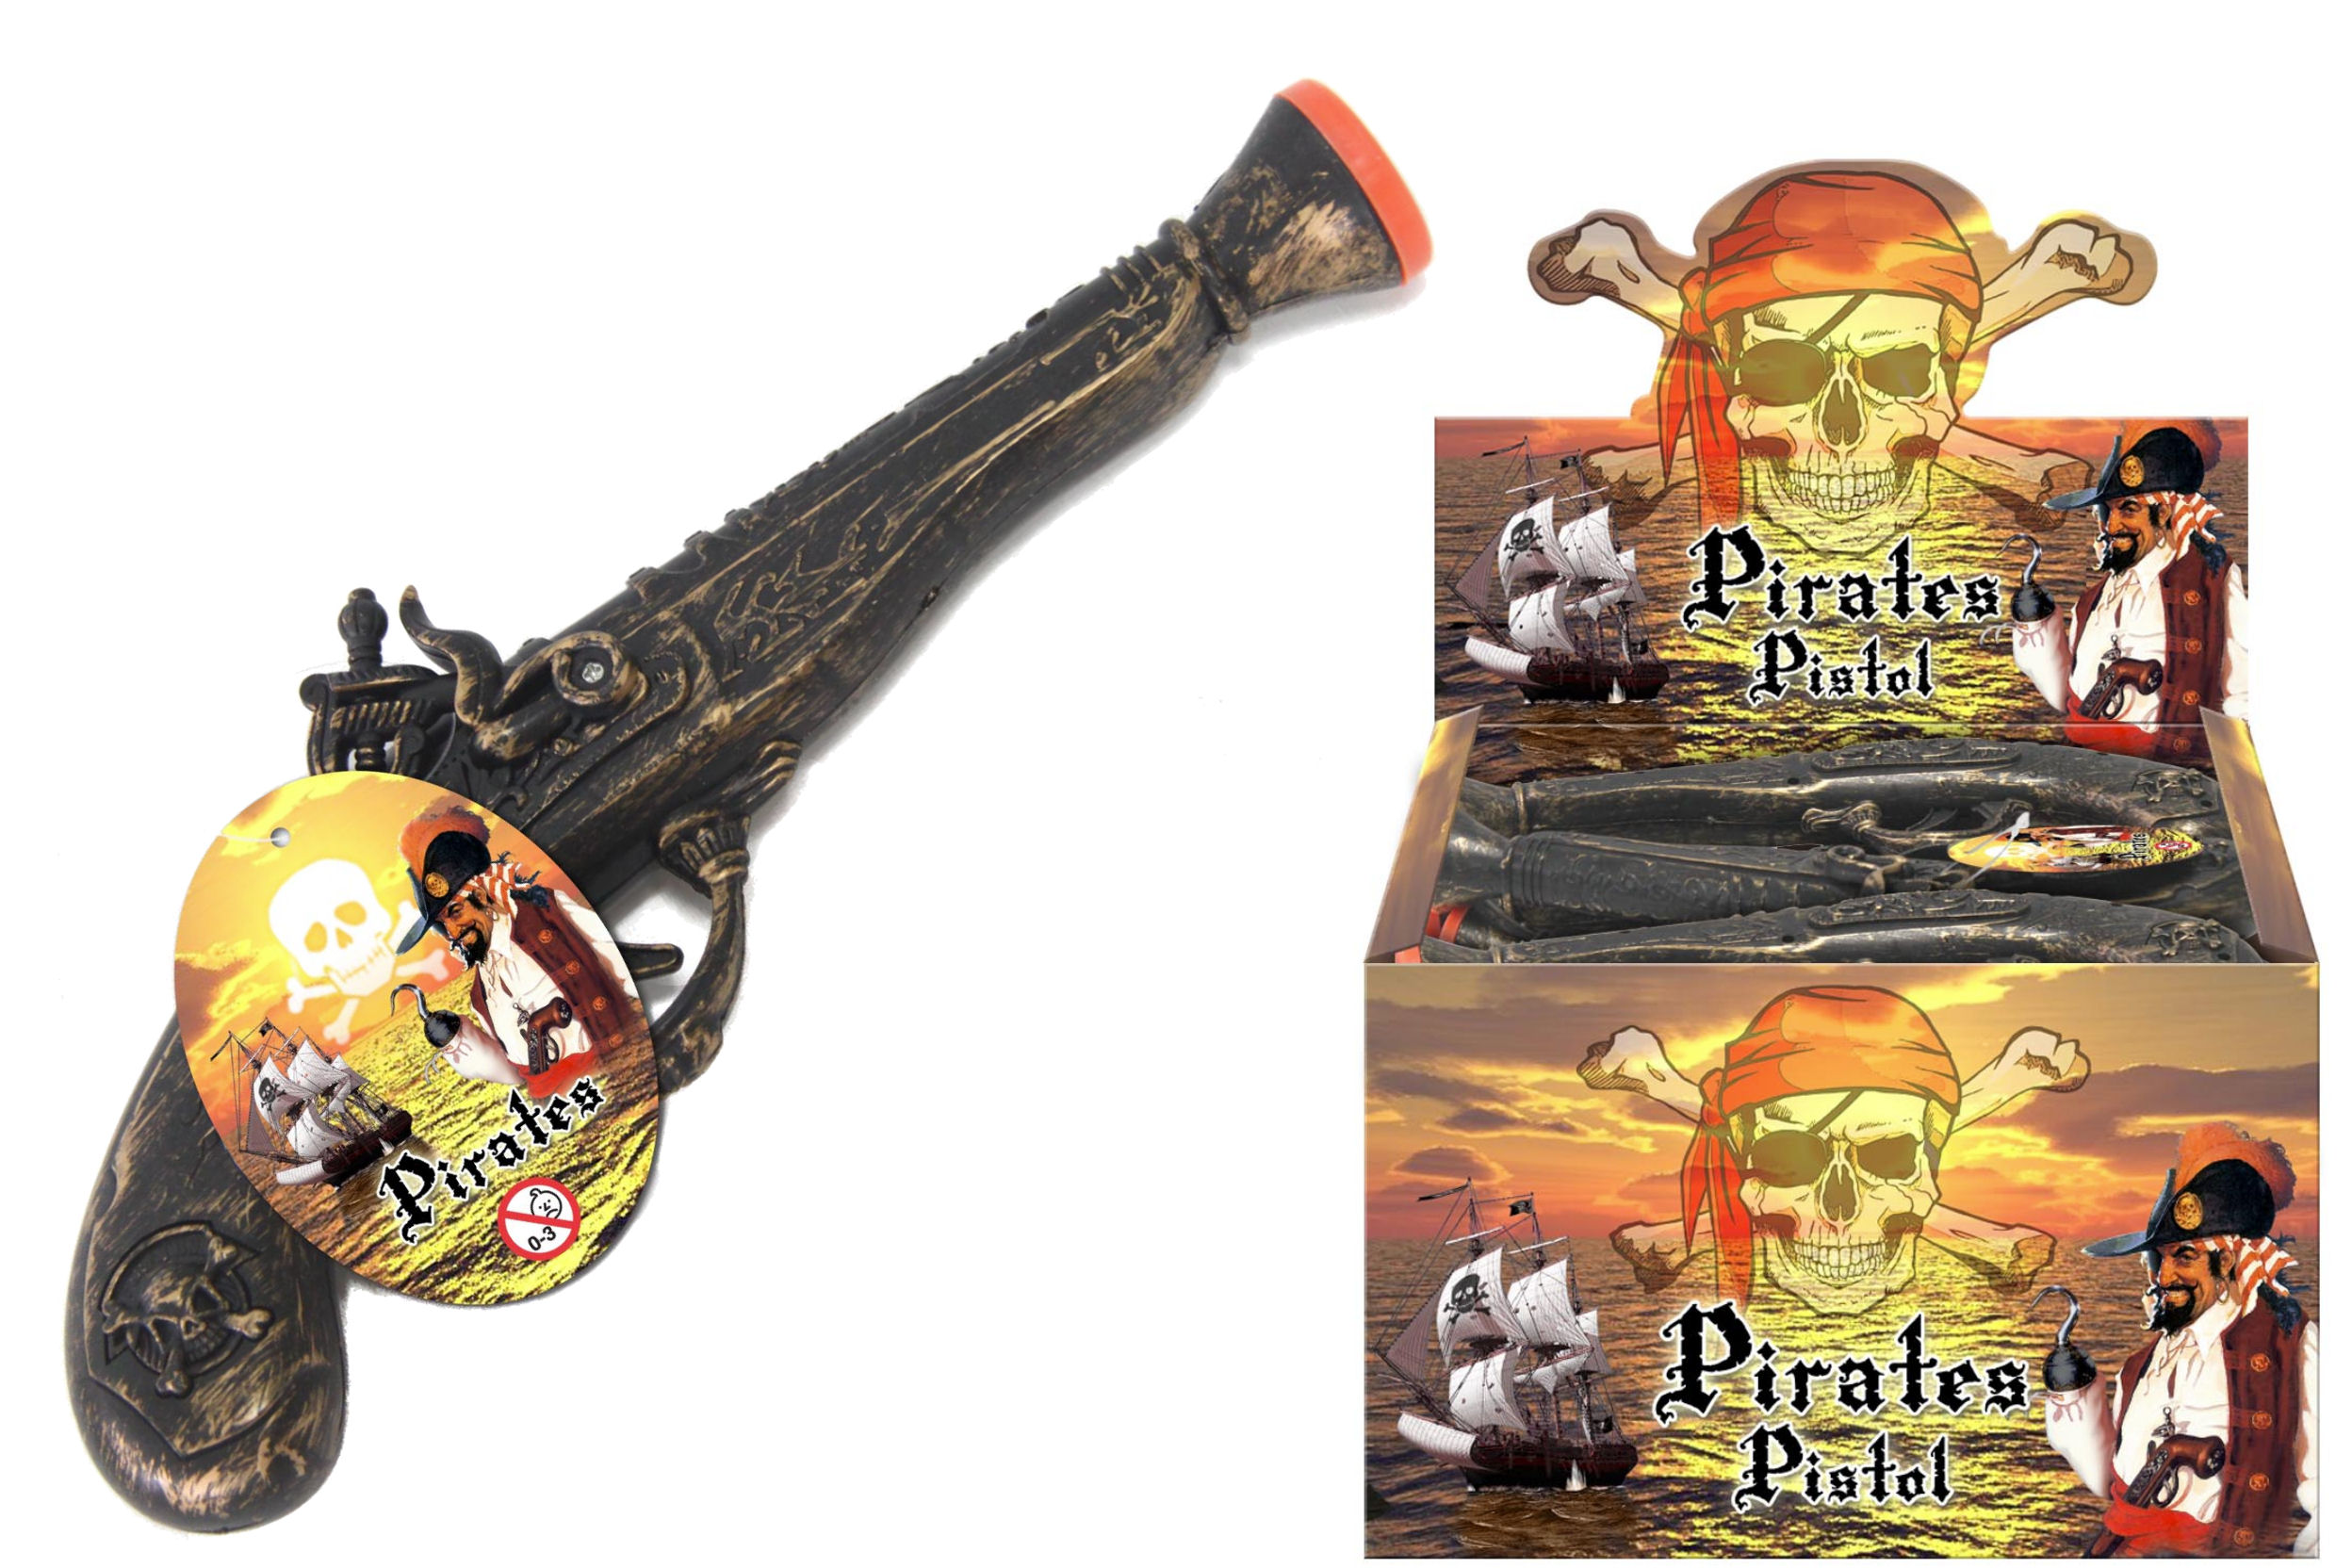 Pirate Pistol In Display Box